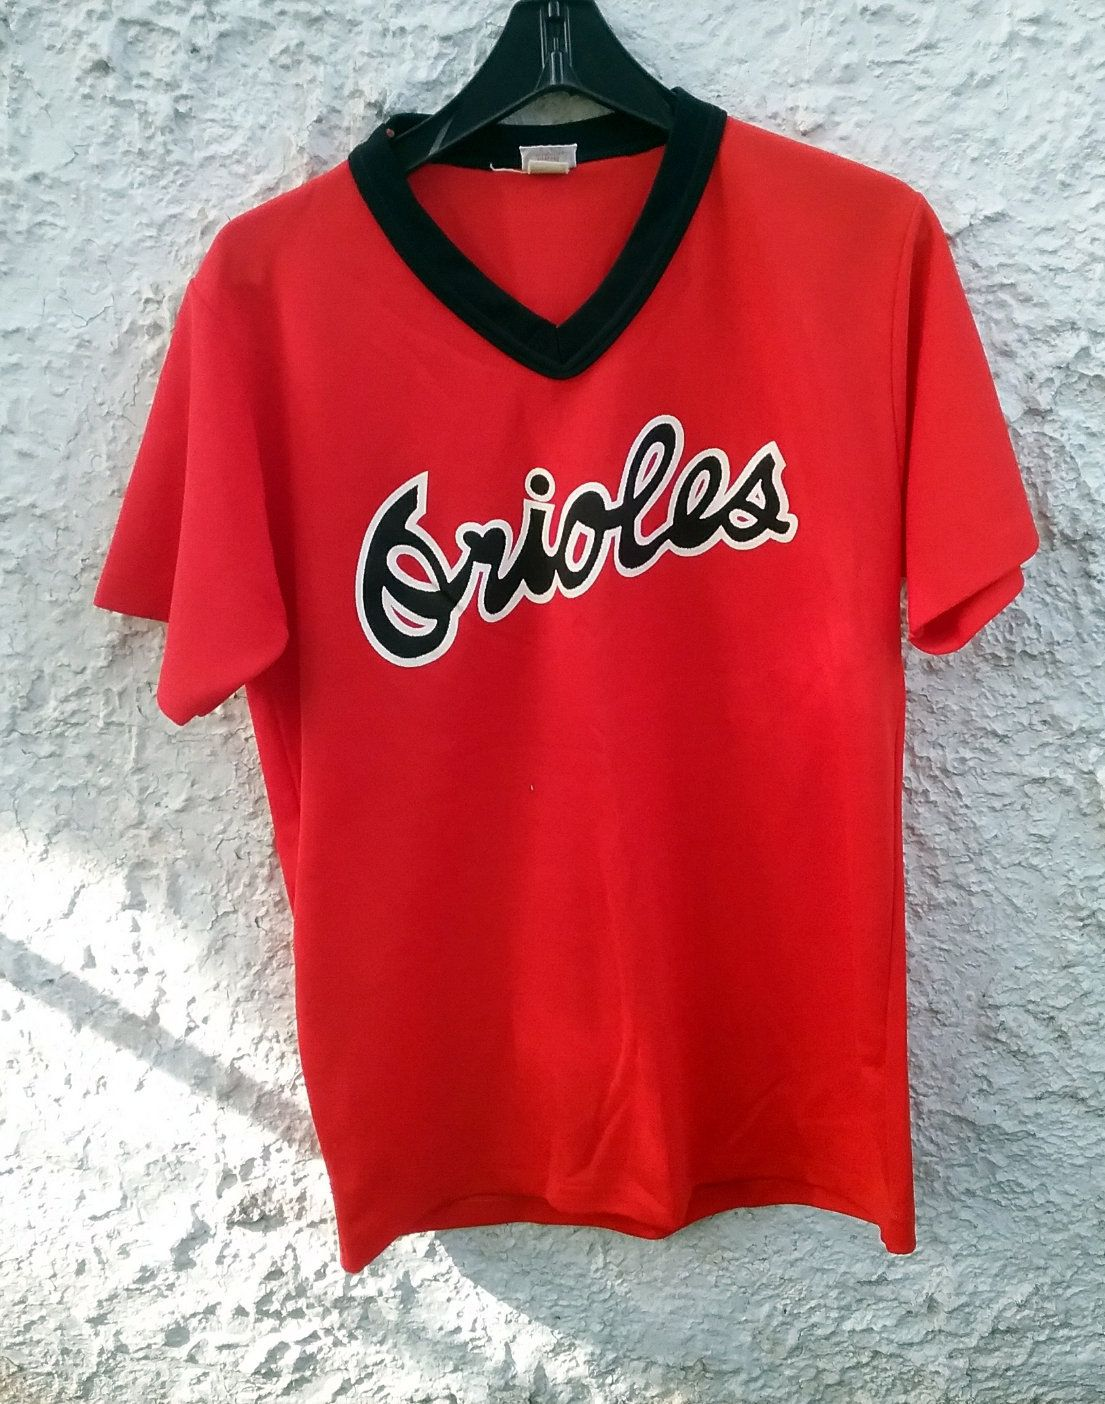 3de18d3f8e6 80s 90s Baltimore Orioles Jersey Shirt MLB Large Orange Black polyester by  Fchoicevintage on Etsy  jersey  vintage  baltimoreorioles